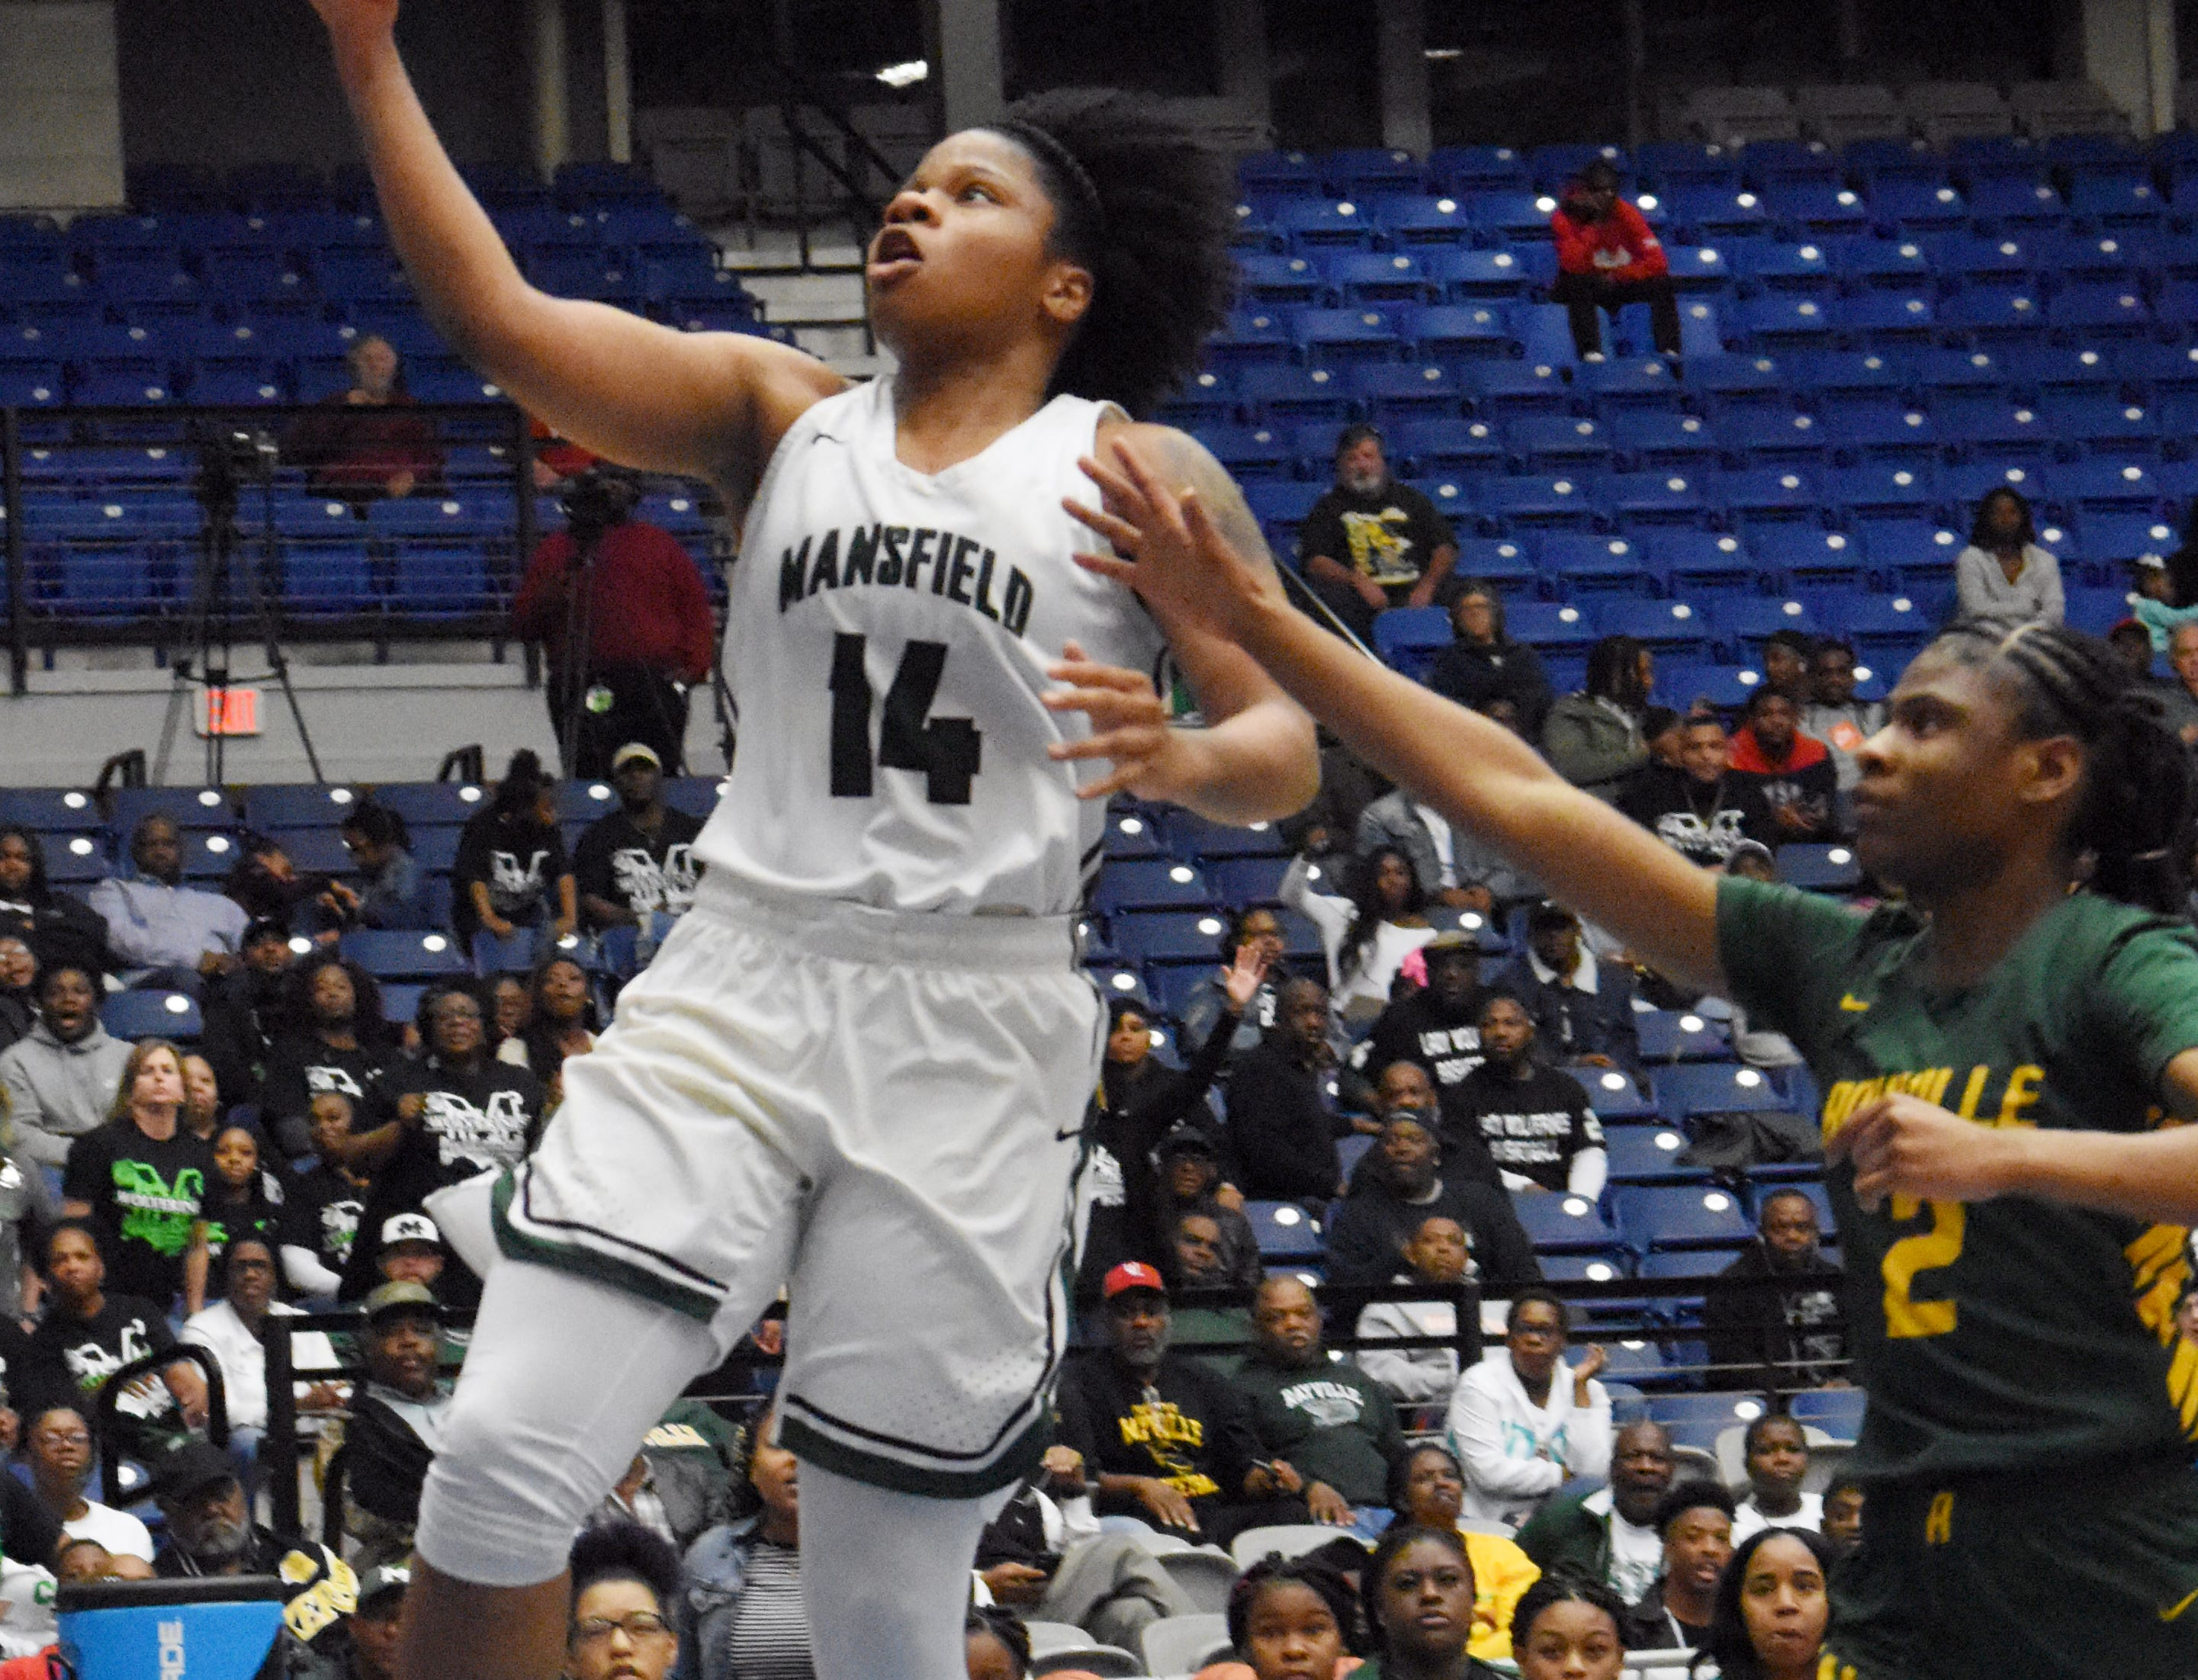 Mansfield's Sha'Korryah Wyatt (14, left) goes up for two against Rayville's Edberly Minnieweather in the Class 2A semifinal game of the 2019 Allstate Sugar Bowl 2019 Louisiana High School Athletic Association Girl's State Basketball Marsh Madness held Thursday, Feb. 28, 2019 at the Rapides Parish Coliseum in Alexandria. Mansfield won 57-49.